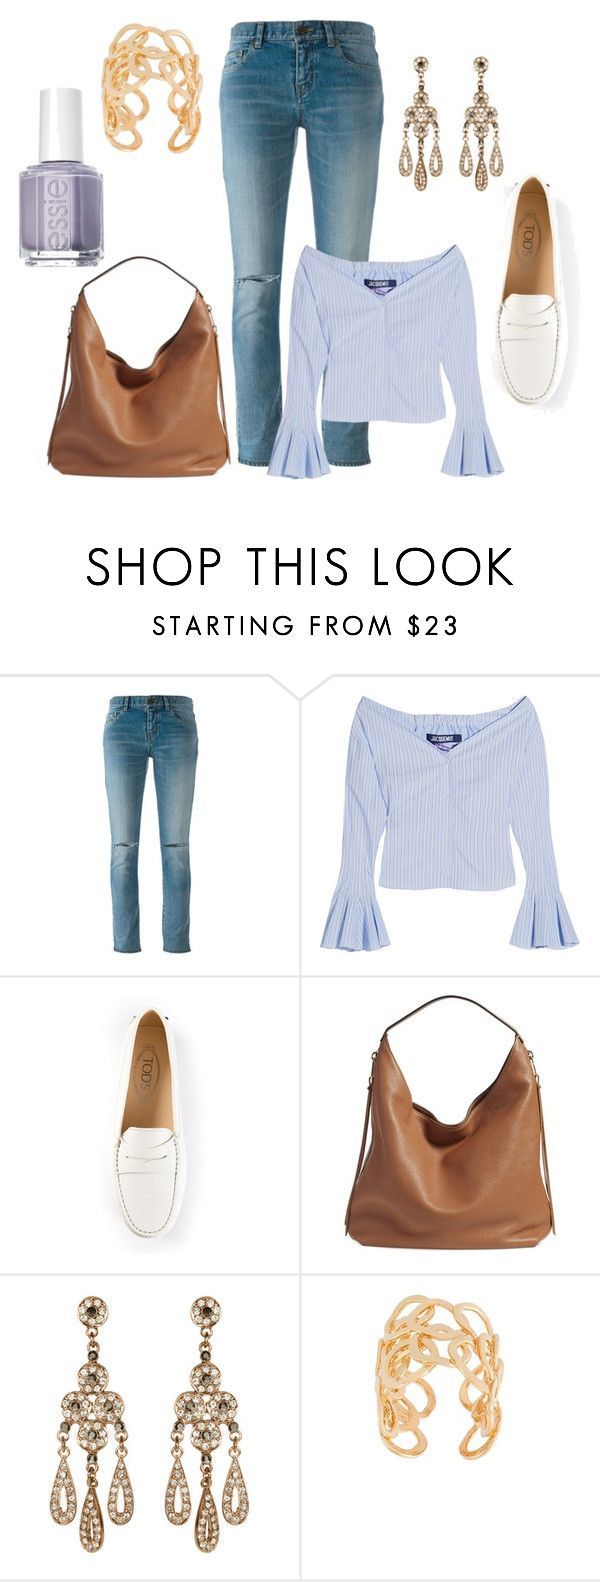 """Πρόταση: Το look της Τετάρτης"" by antiadamo on Polyvore featuring Yves Saint Laurent, Jacquemus, Tod's, Rebecca Minkoff, Accessorize, Gas Bijoux and Essie"